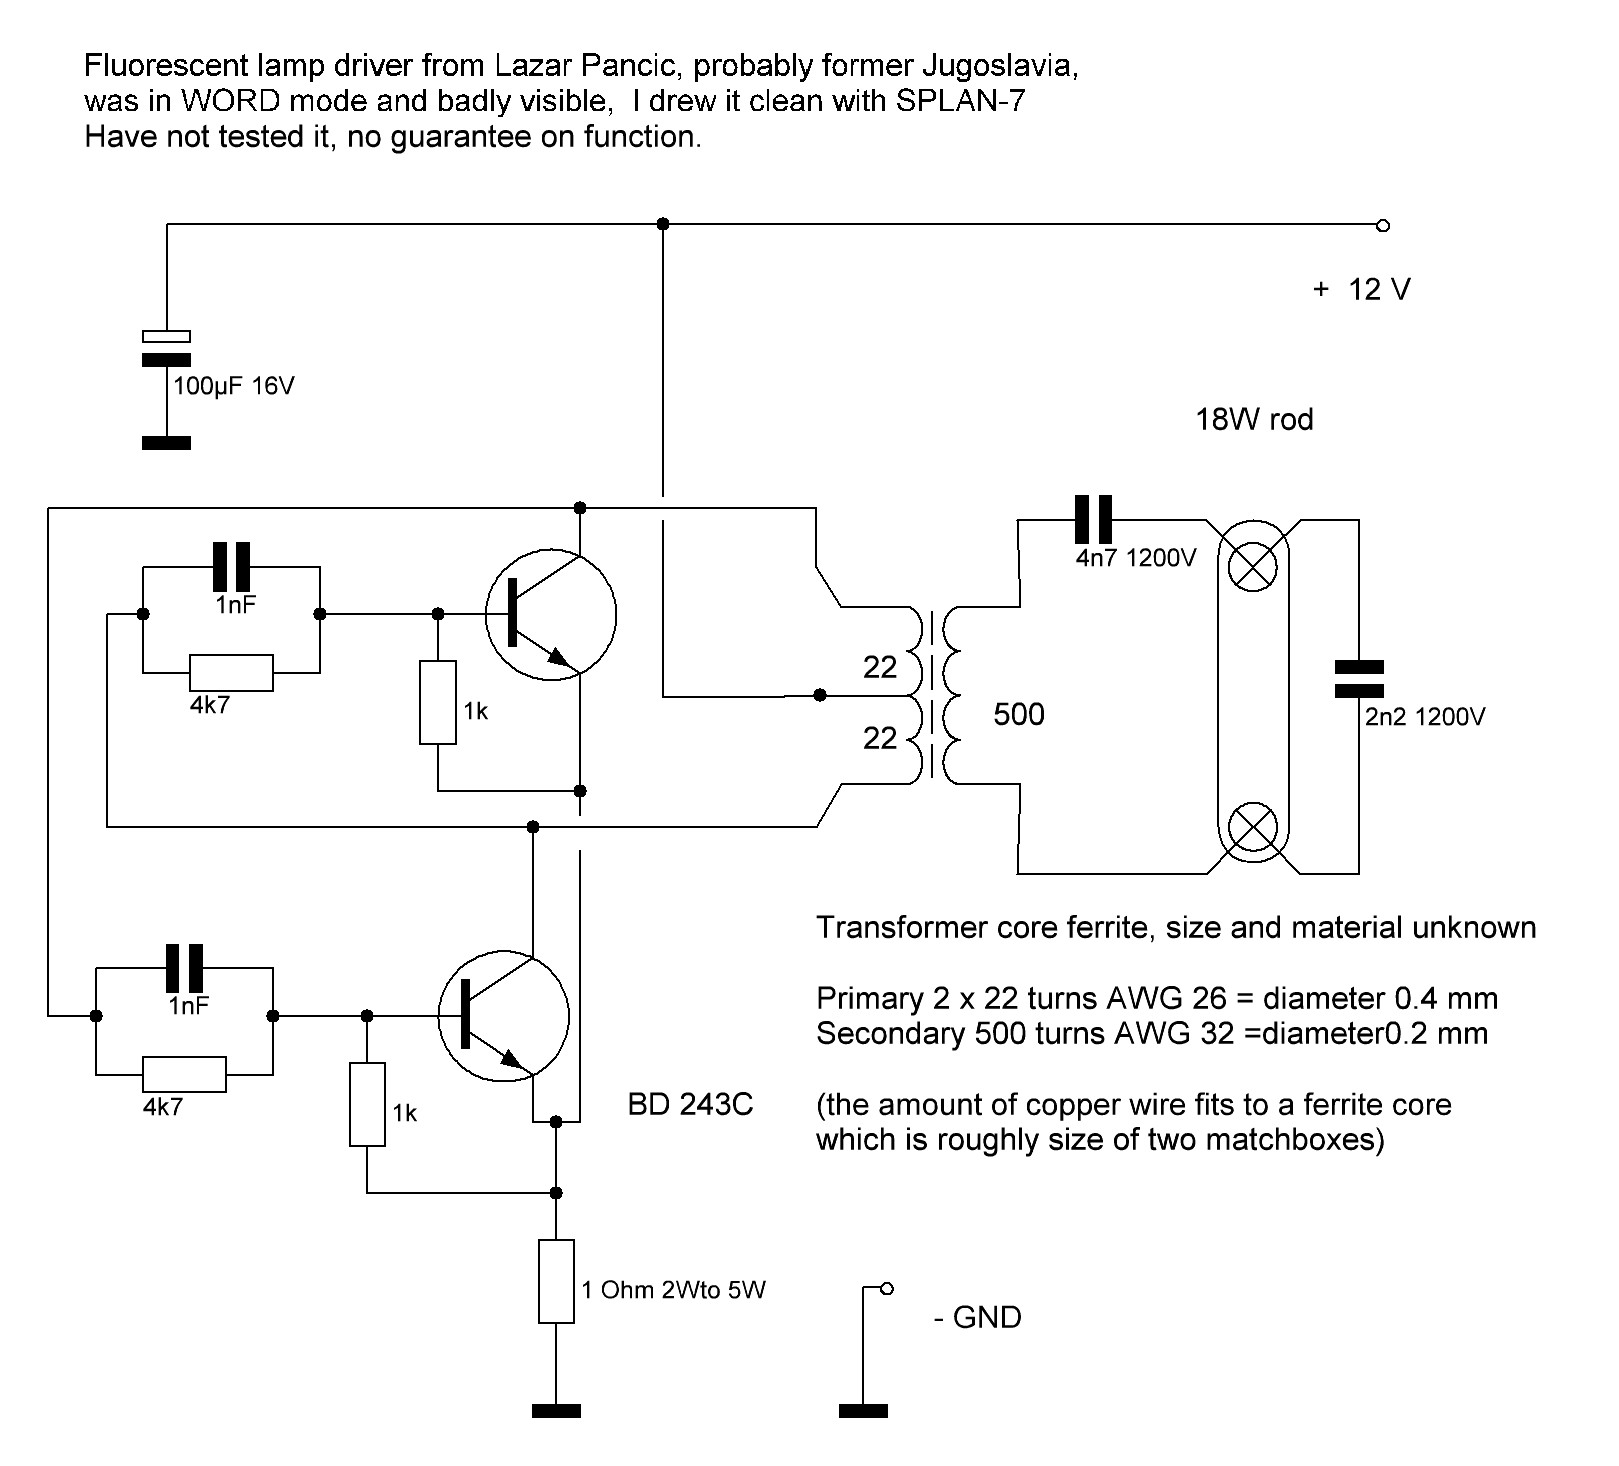 hight resolution of this schematic is also used as lamp driver for scanners or some uv lighters it is very common